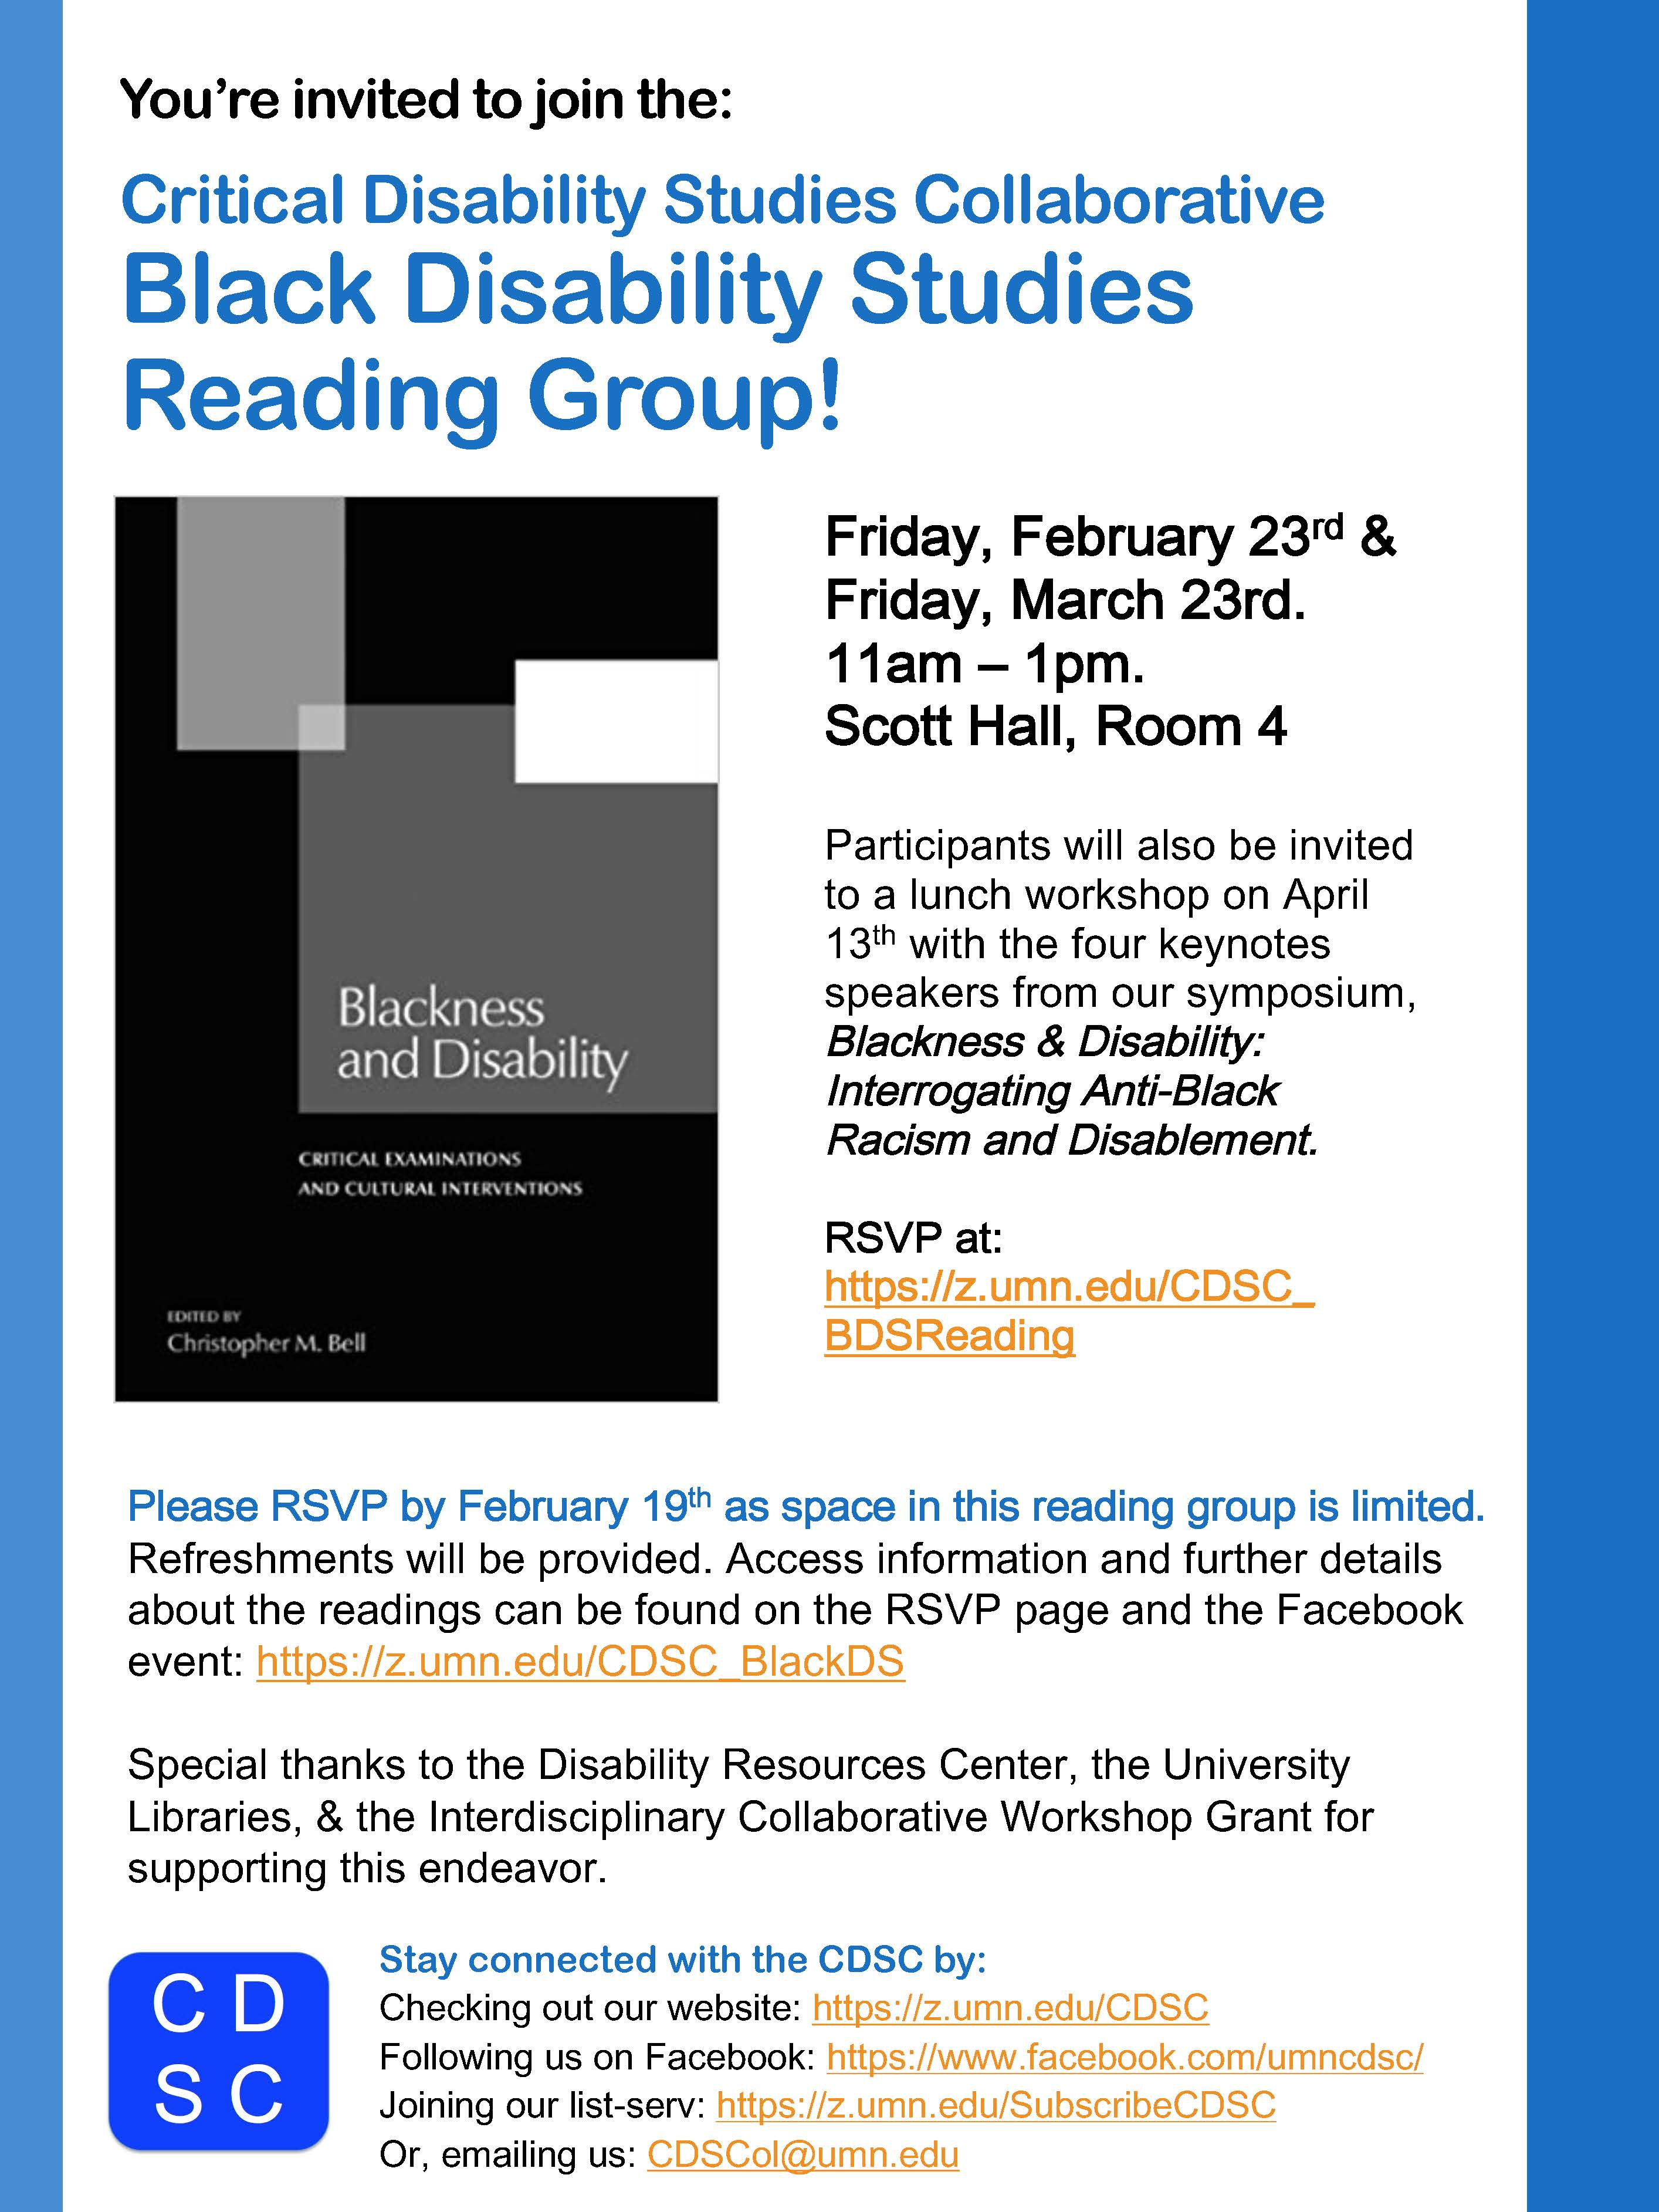 flyer for Black Disability Studies reading group